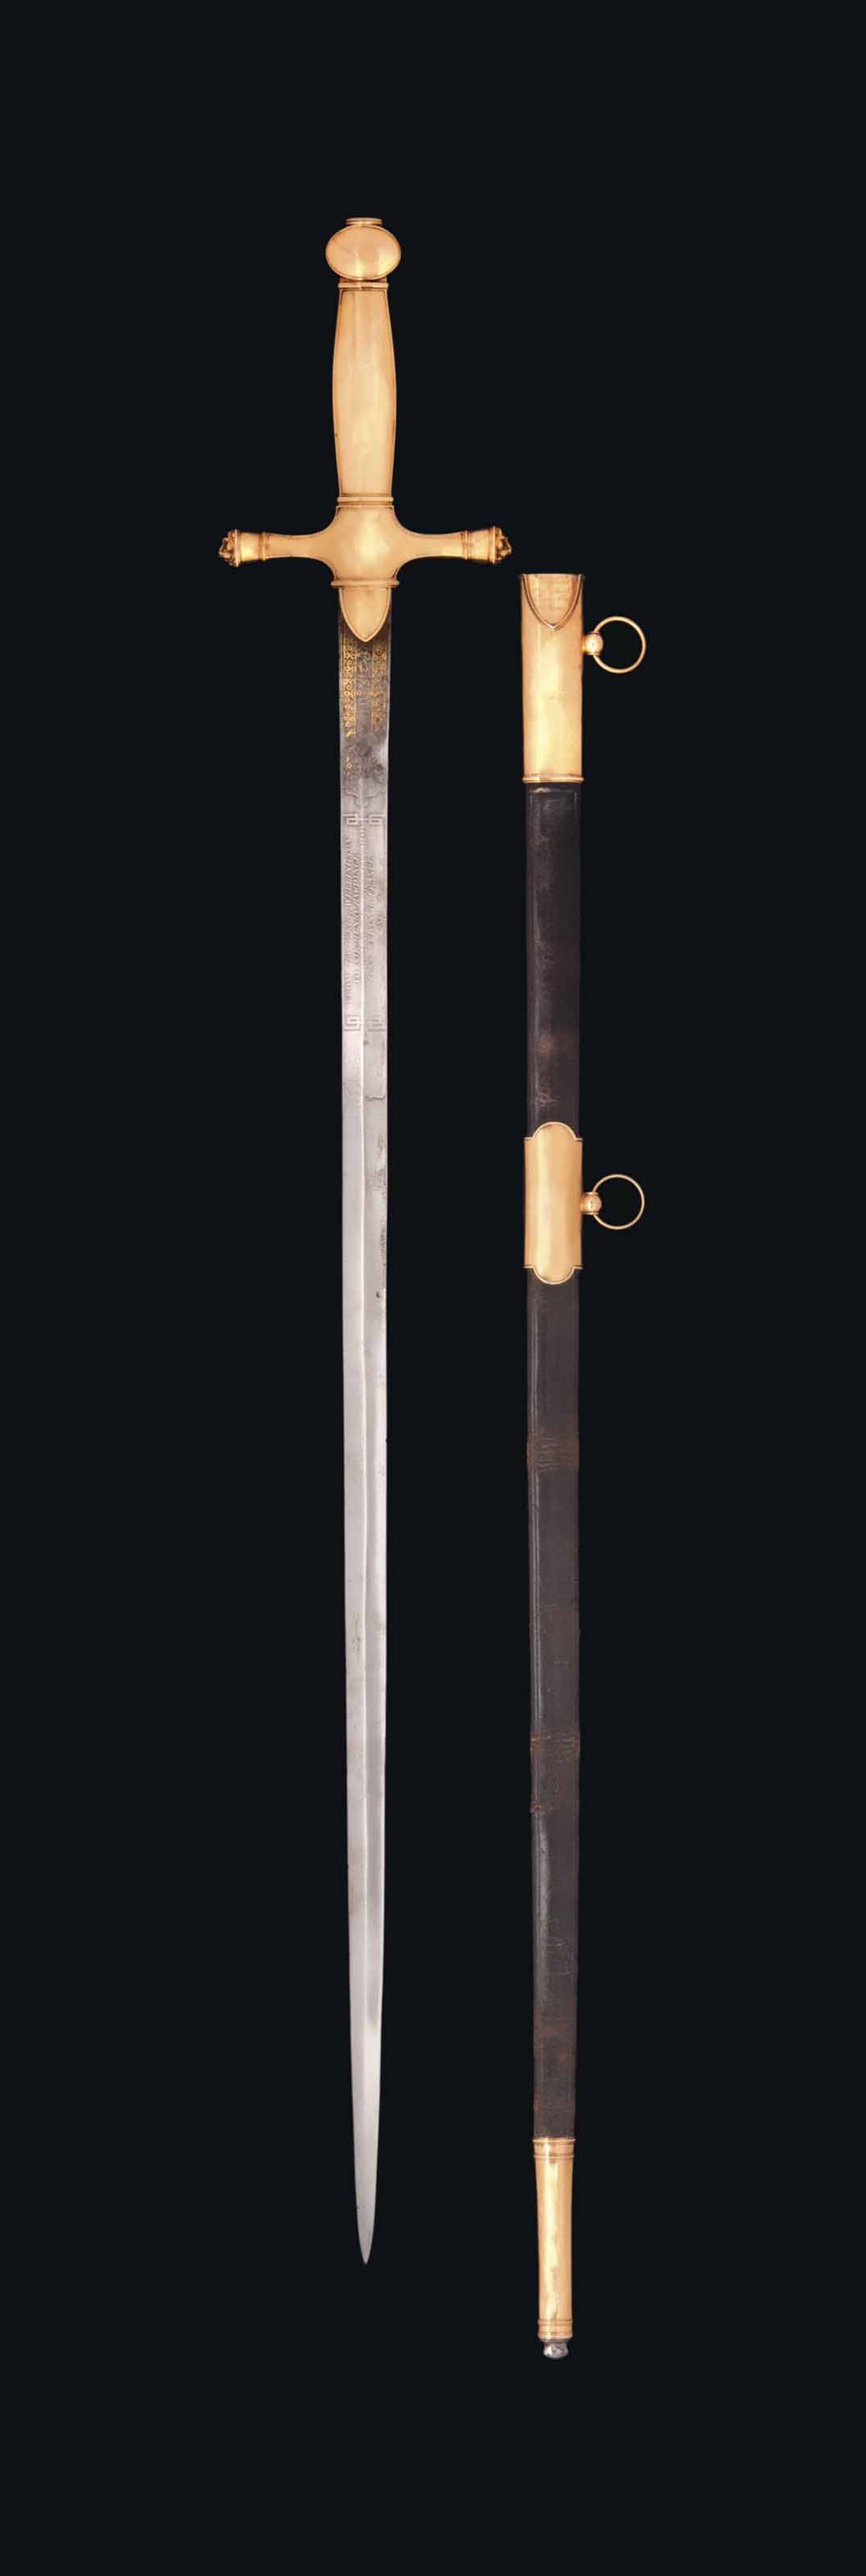 A FINE & IMPORTANT FRENCH GOLD-HILTED SWORD (GLAIVE) CARRIED BY FIELD-MARSHAL THE DUKE OF WELLINGTON, PRESENTED BY HIM TO LT. COL. SIR HENRY HARDINGE AS A SWORD OF HONOUR AND SAID TO HAVE BEEN MADE FOR THE EMPEROR NAPOLÉON I